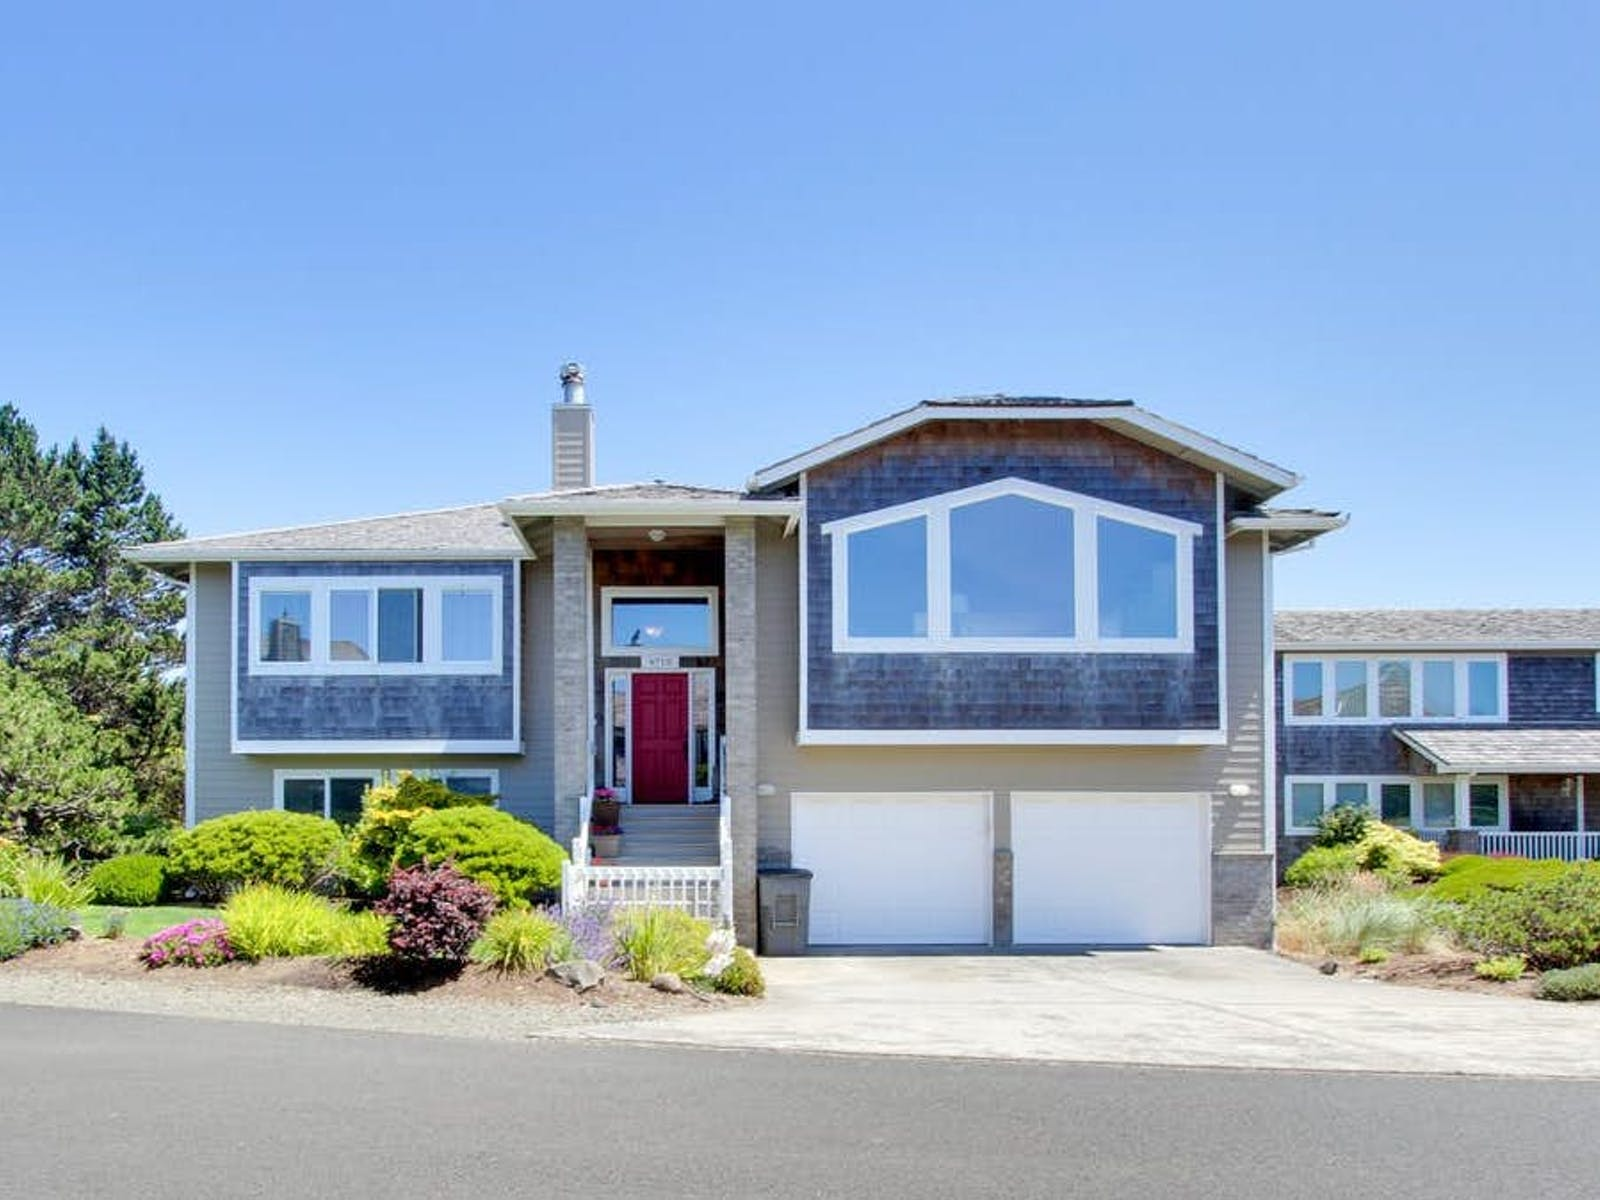 Gearhart, OR vacation home with large windows and 2 car garage